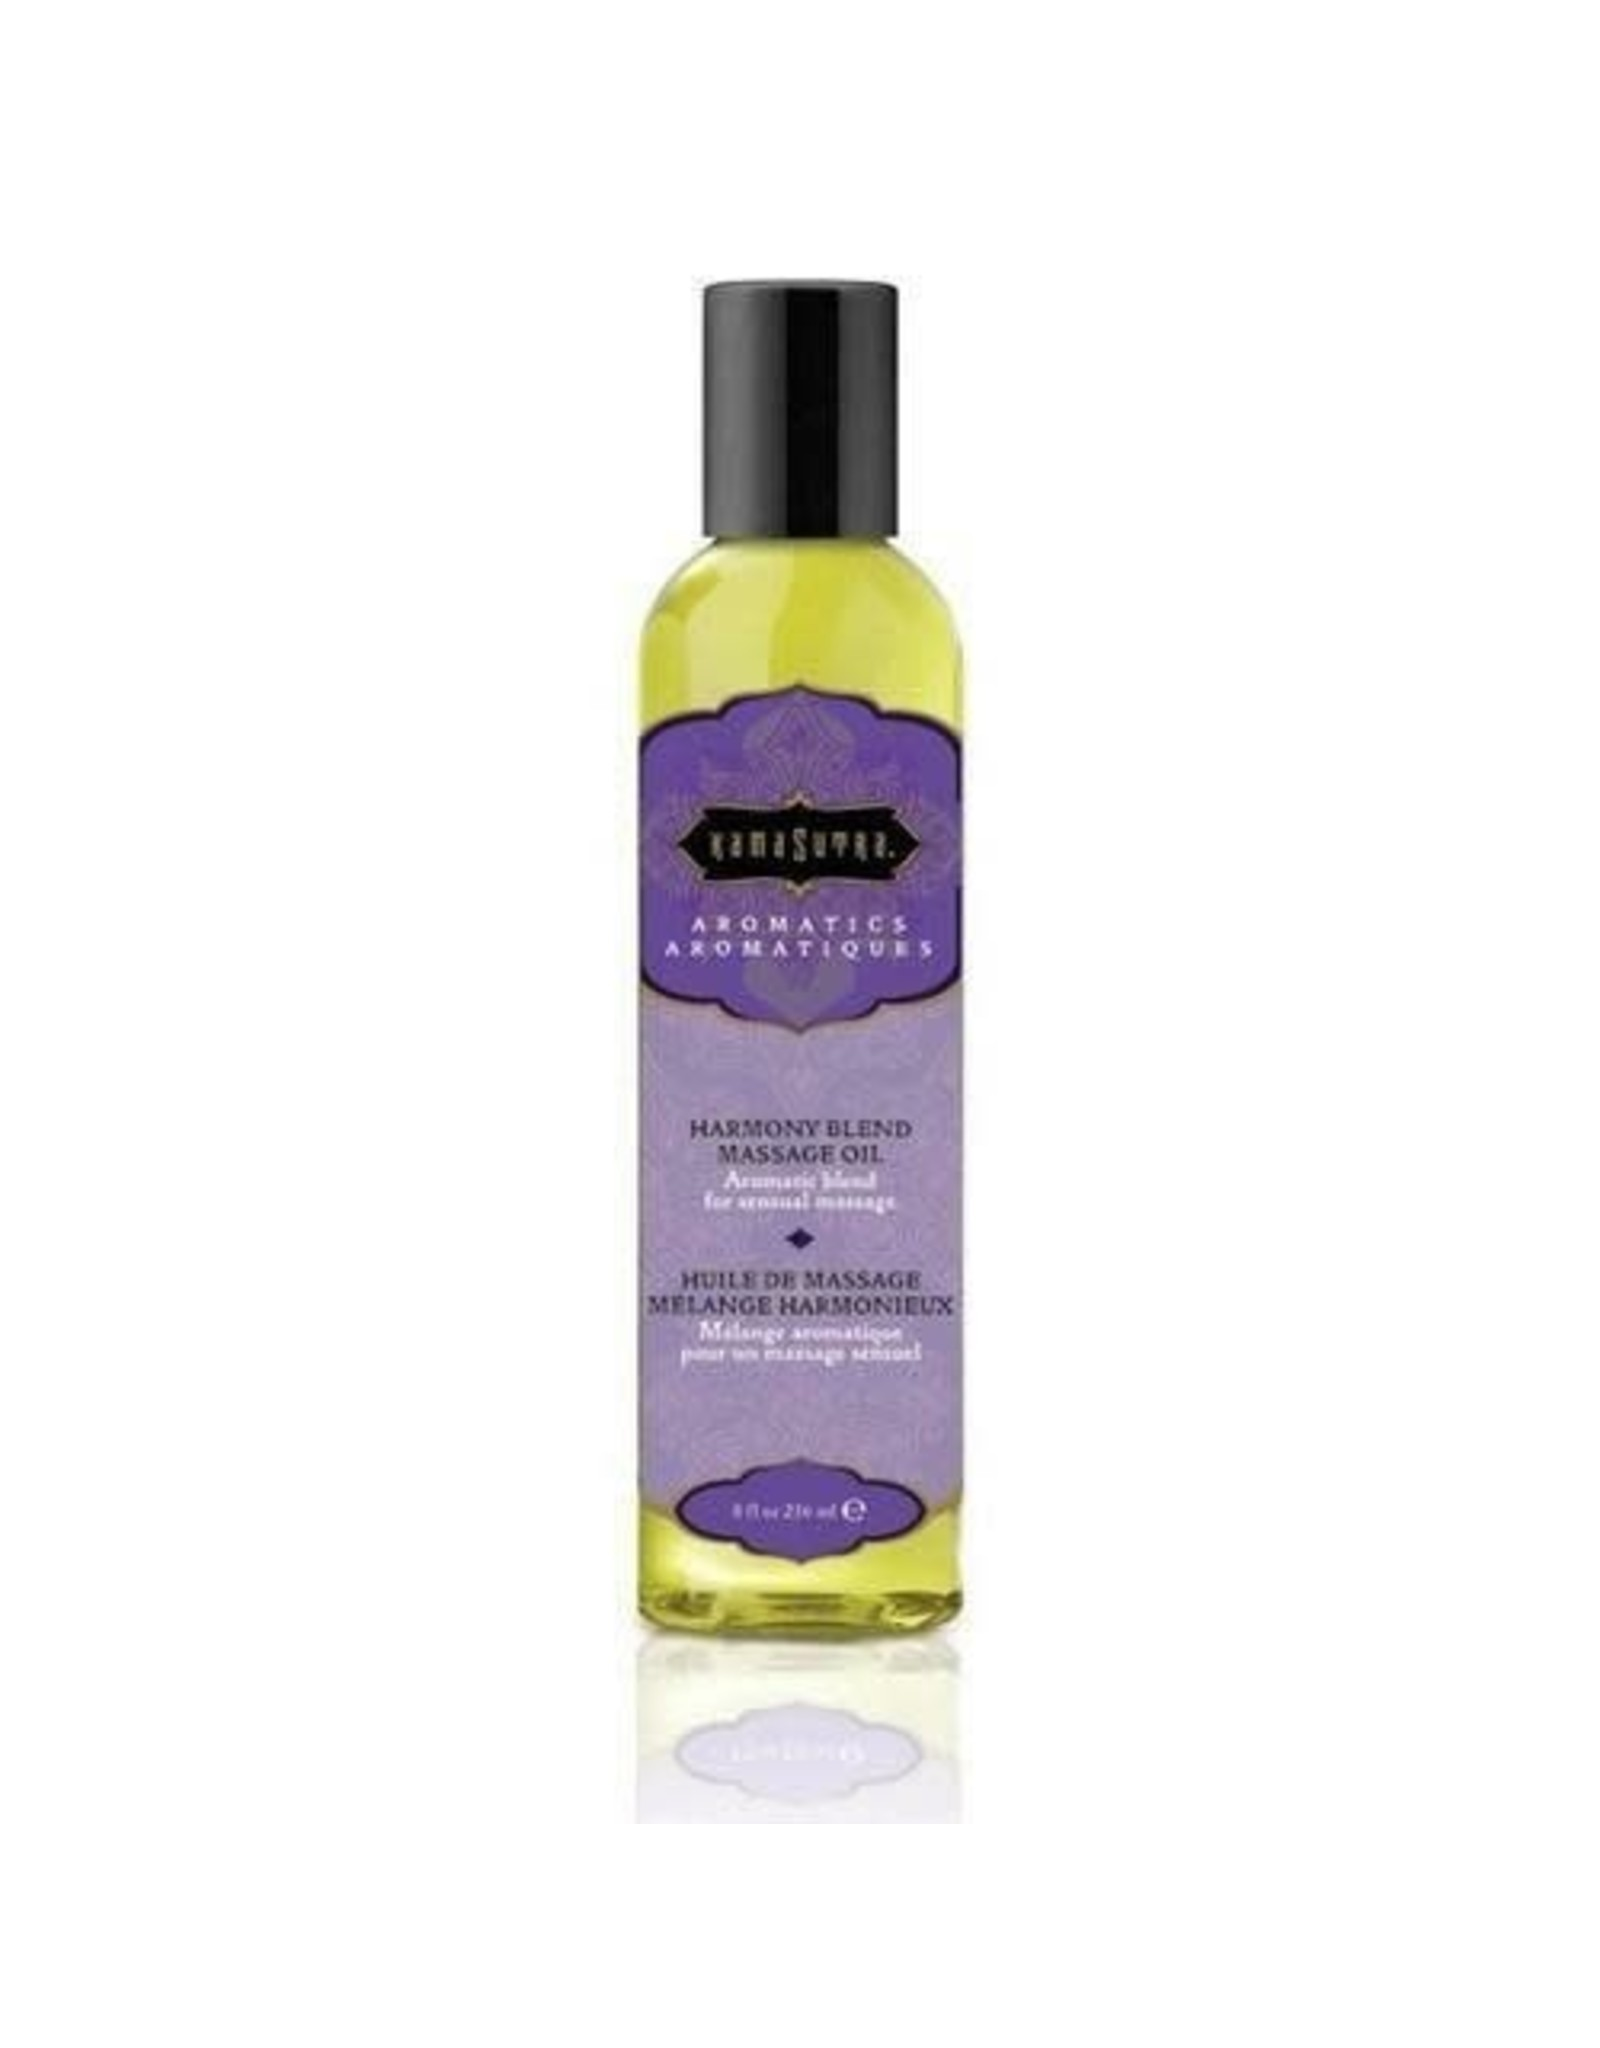 Kama Sutra Kama Sutra Harmony Blend Massage Oil 739122000222